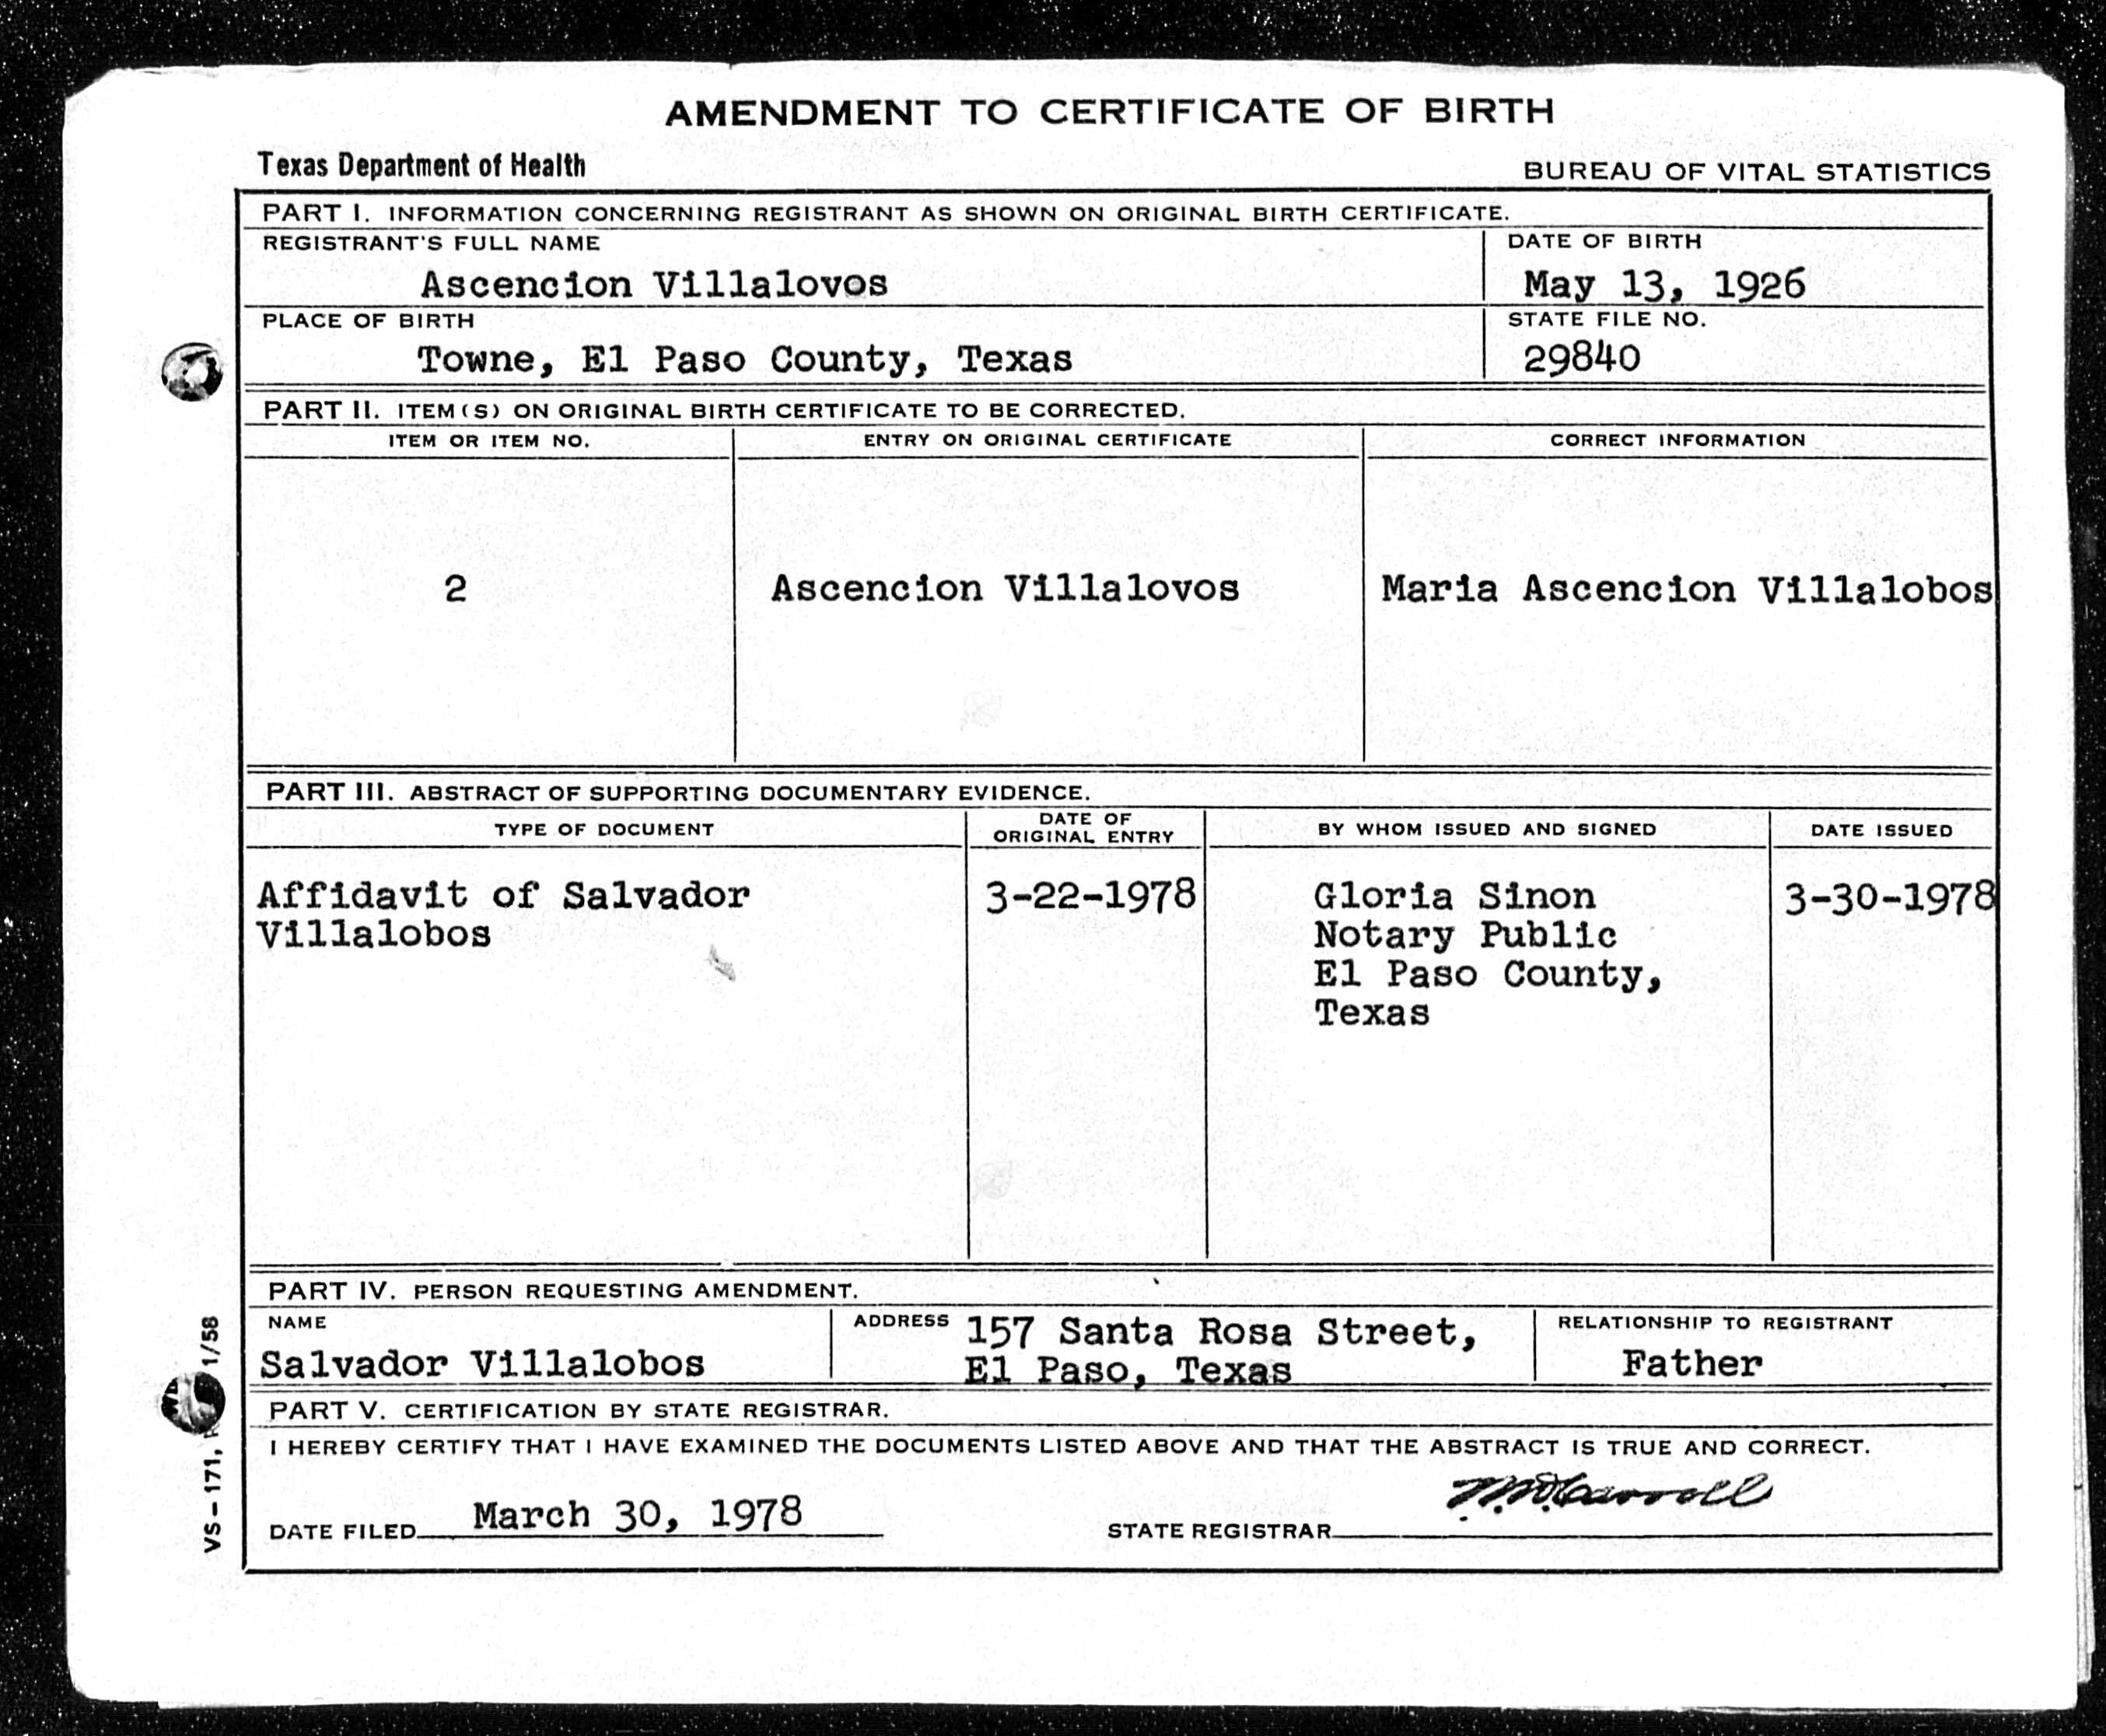 Maria acencion chonita villalobos aldaco 1923 2013 find a maria ascencion villalobos amended birth certificate with correct name and birthdate witnessed by her father salvador aiddatafo Images